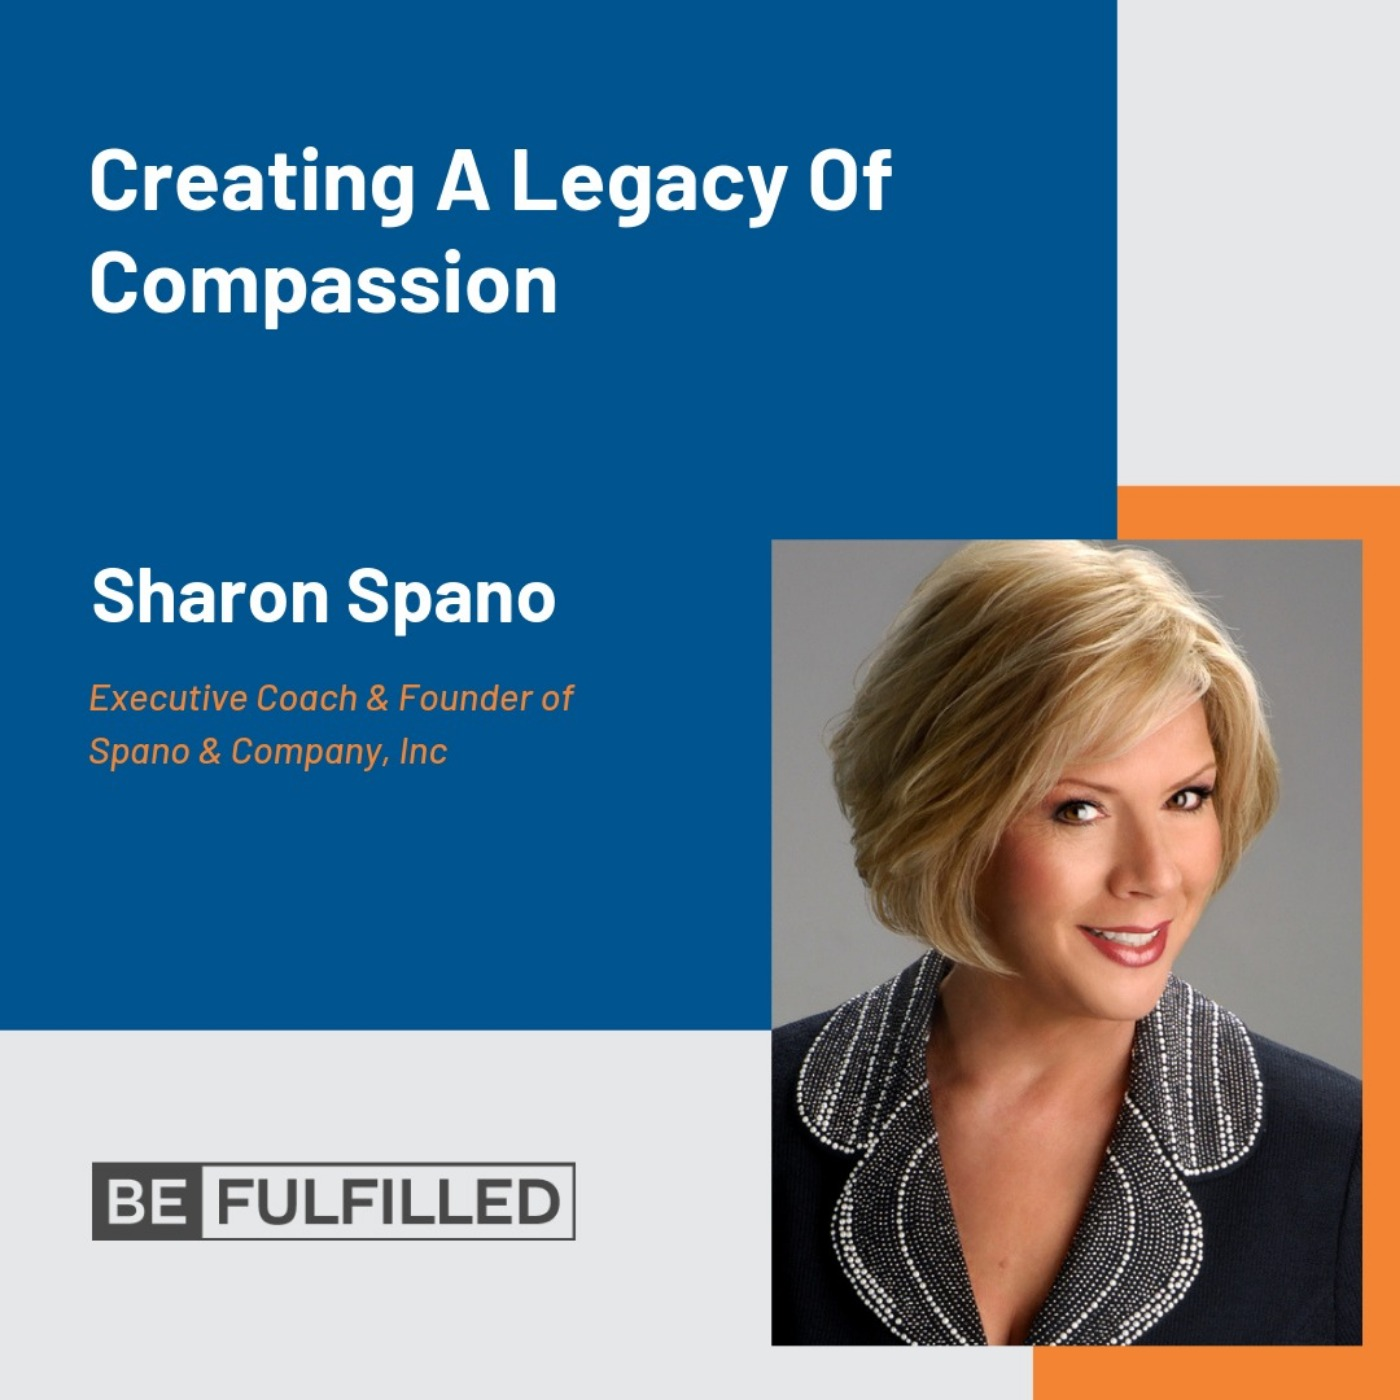 Creating A Legacy Of Compassion - Sharon Spano